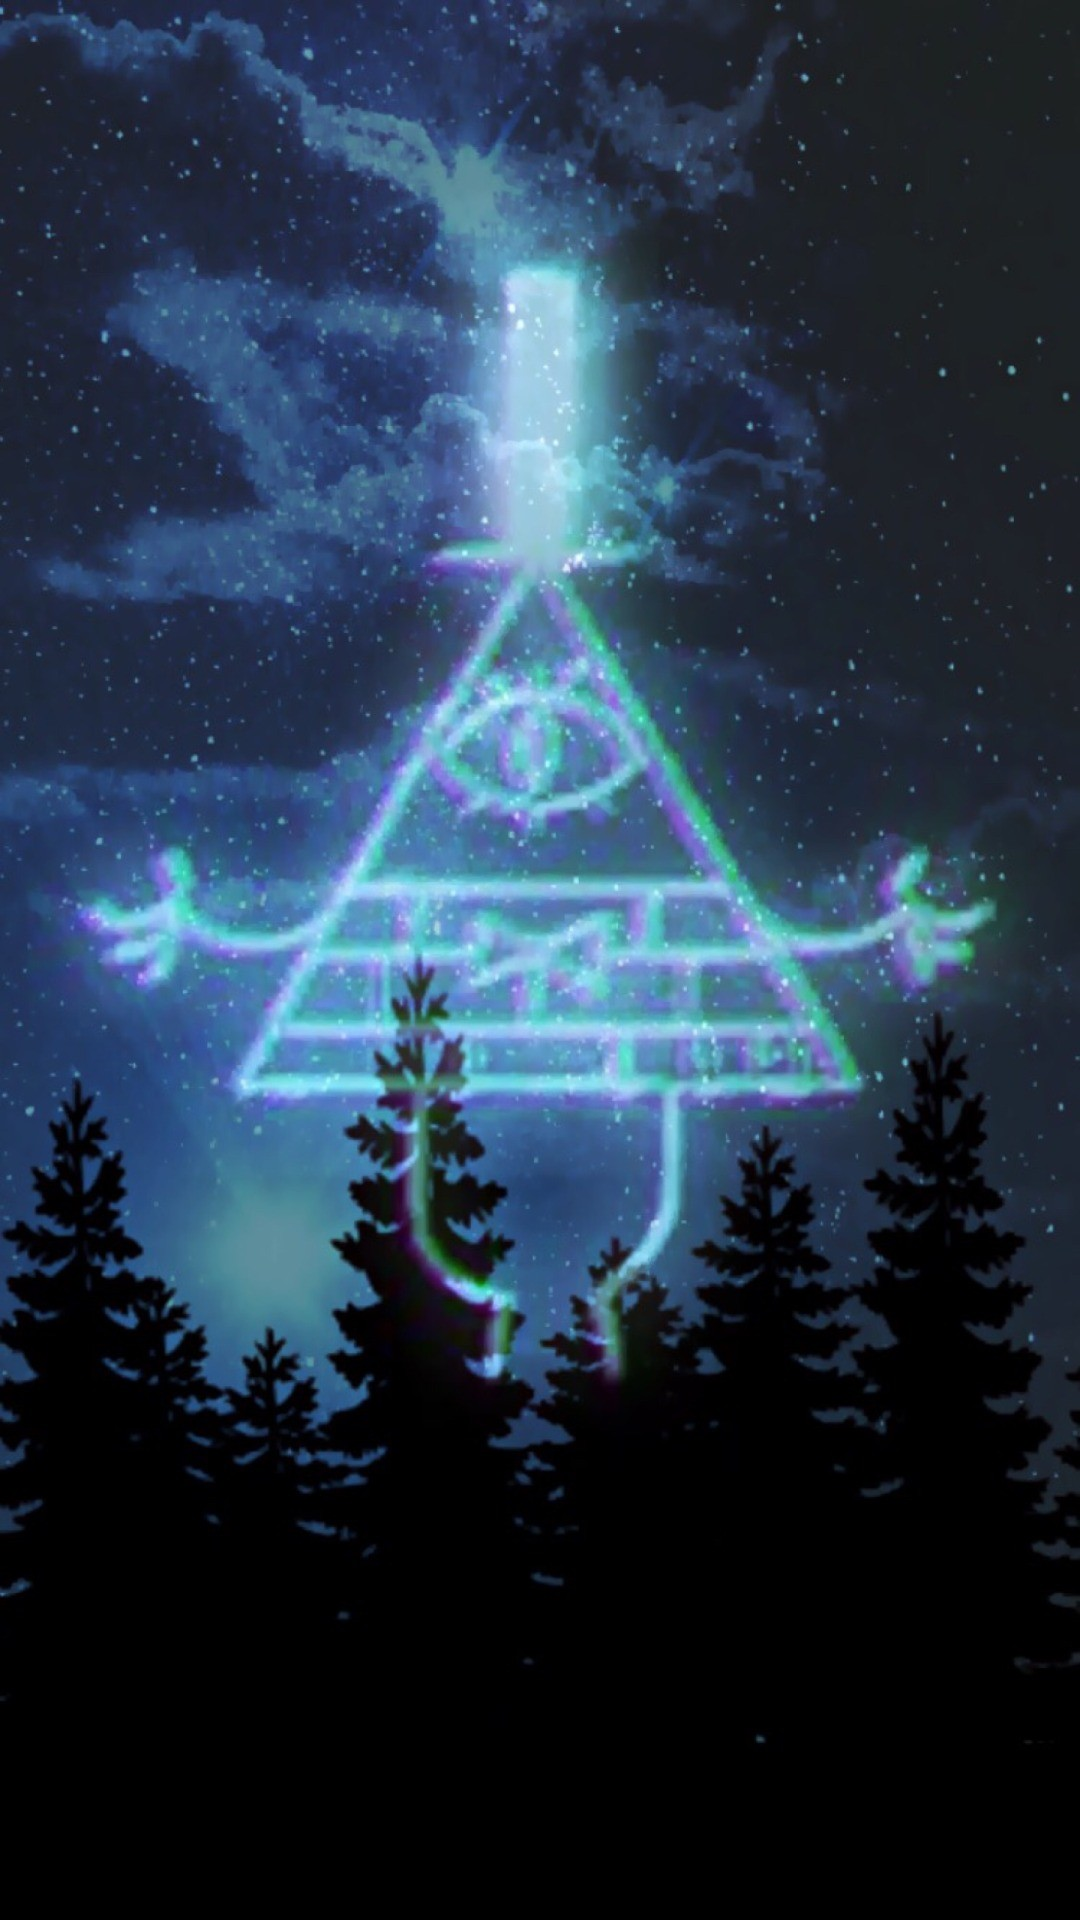 download Gravity Falls Bill Cipher Wallpaper 80 images 1080x1920